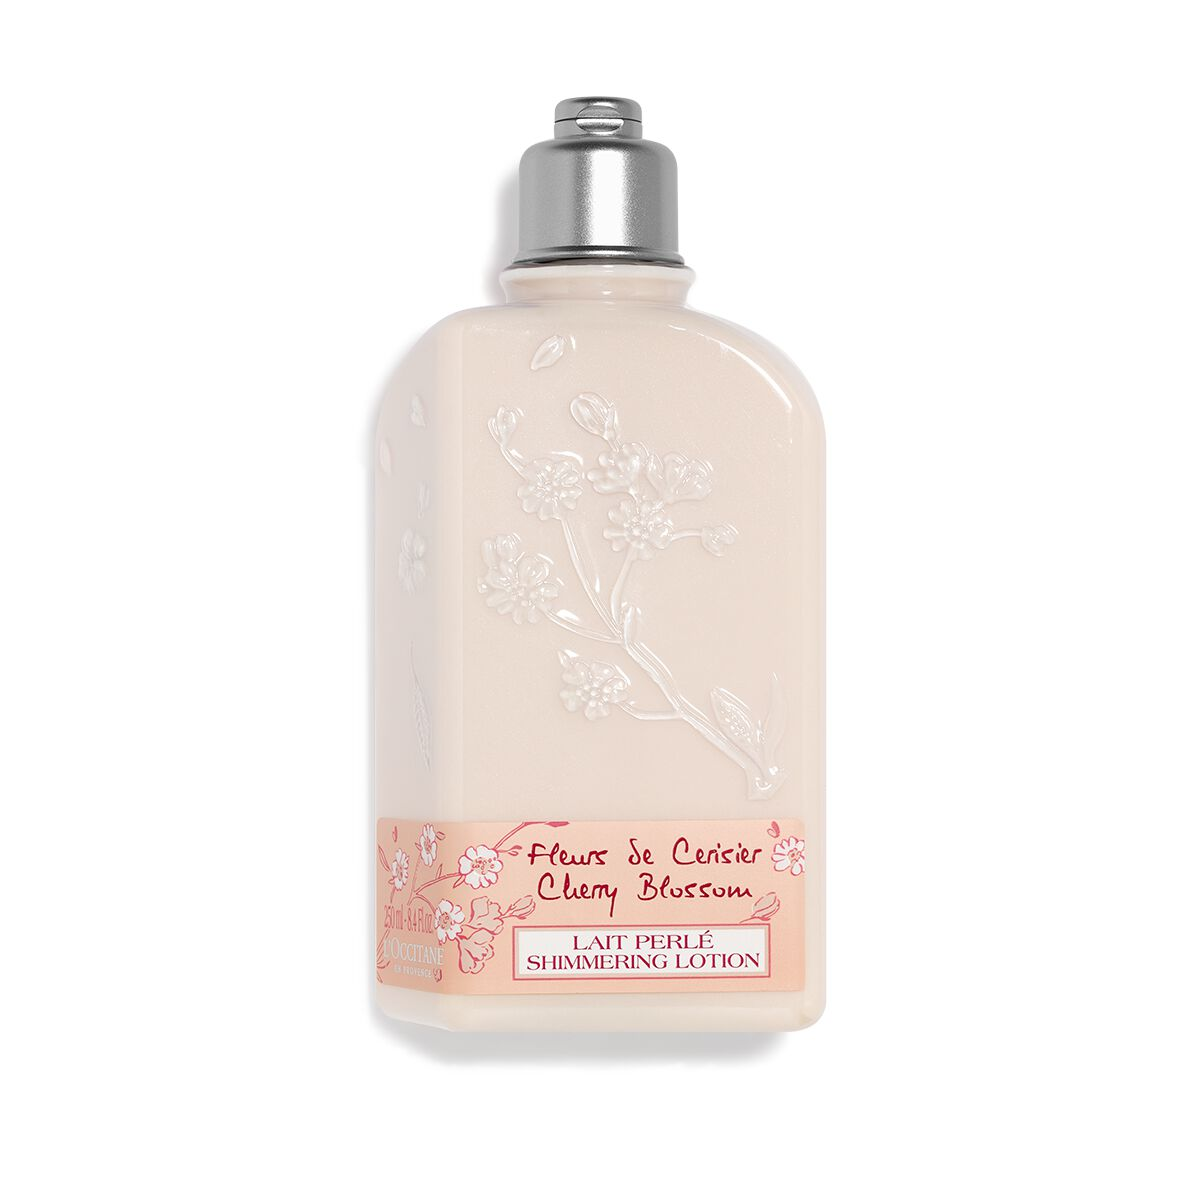 Cherry Blossom Shimmered Lotion 8.4 fl. oz. from L'OCCITANE